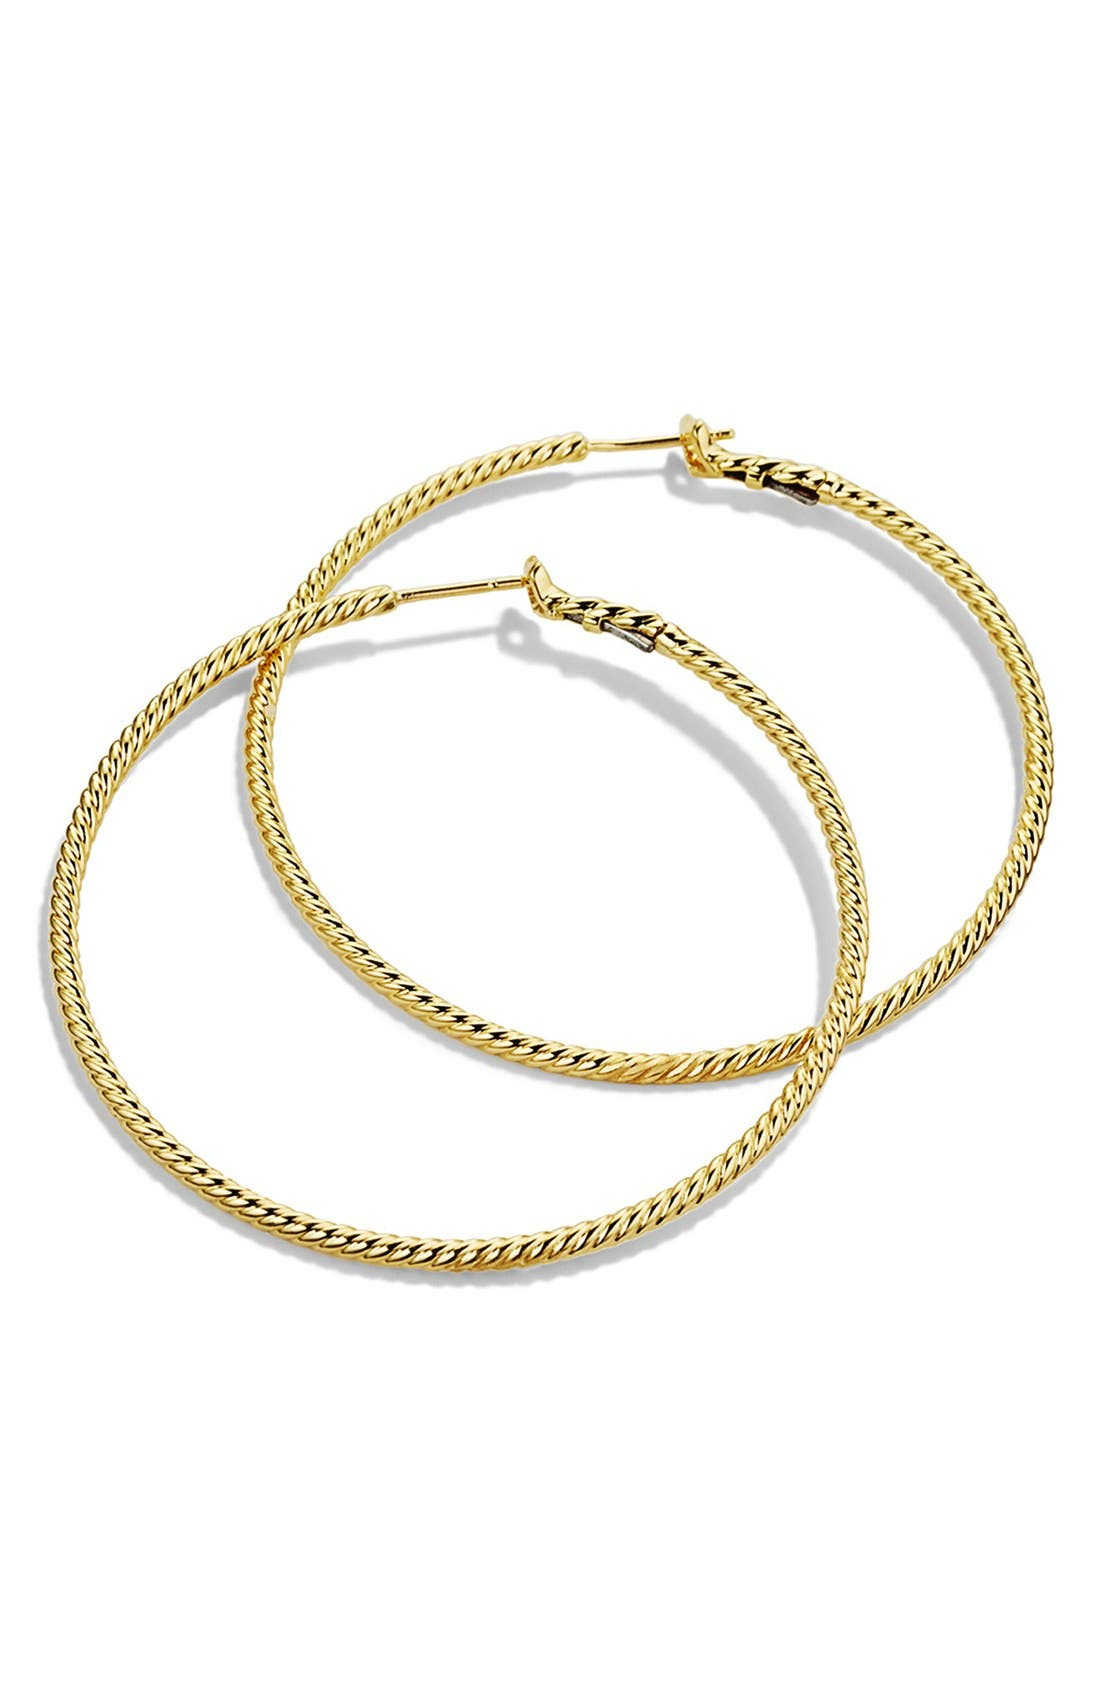 'Cable Classics' Hoop Earrings in Gold,                             Alternate thumbnail 2, color,                             711